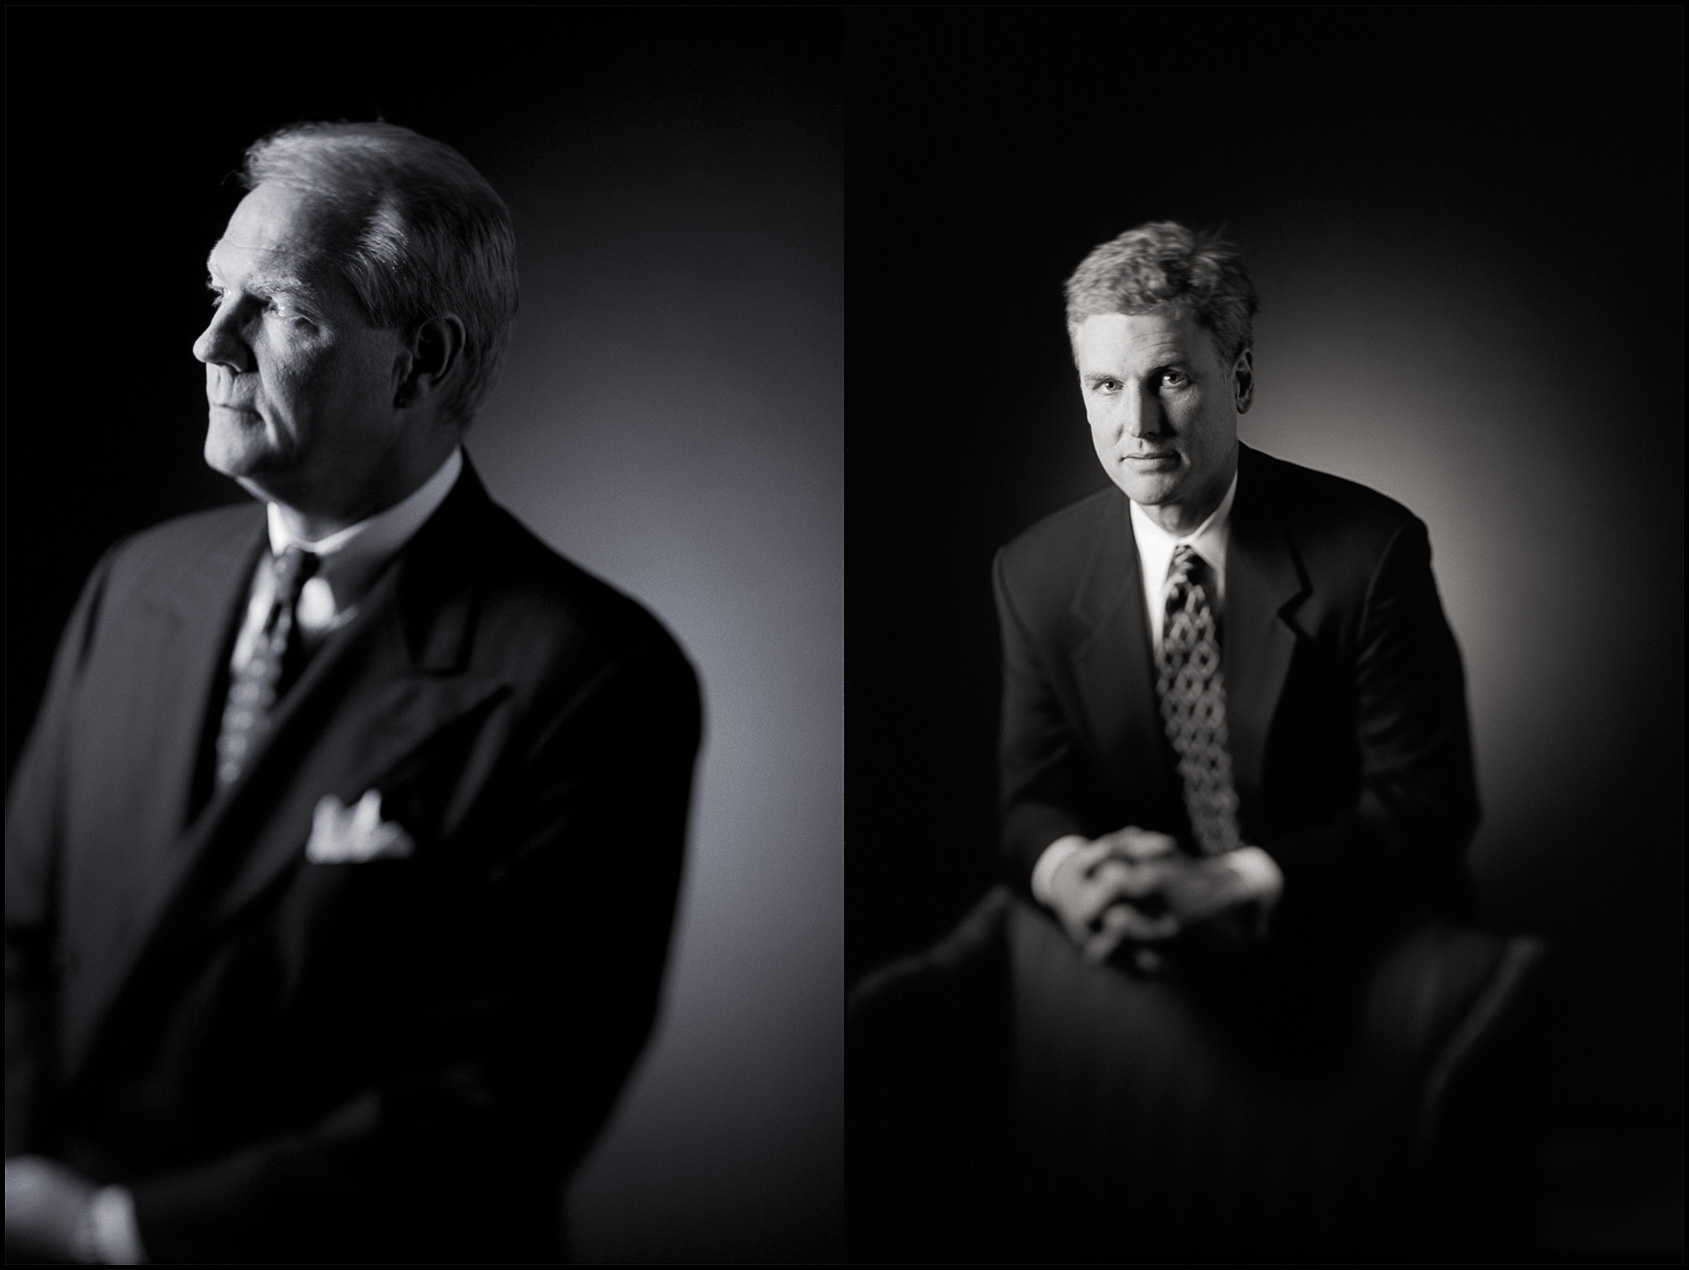 Two executive portraits in black and white with selective focus technique.